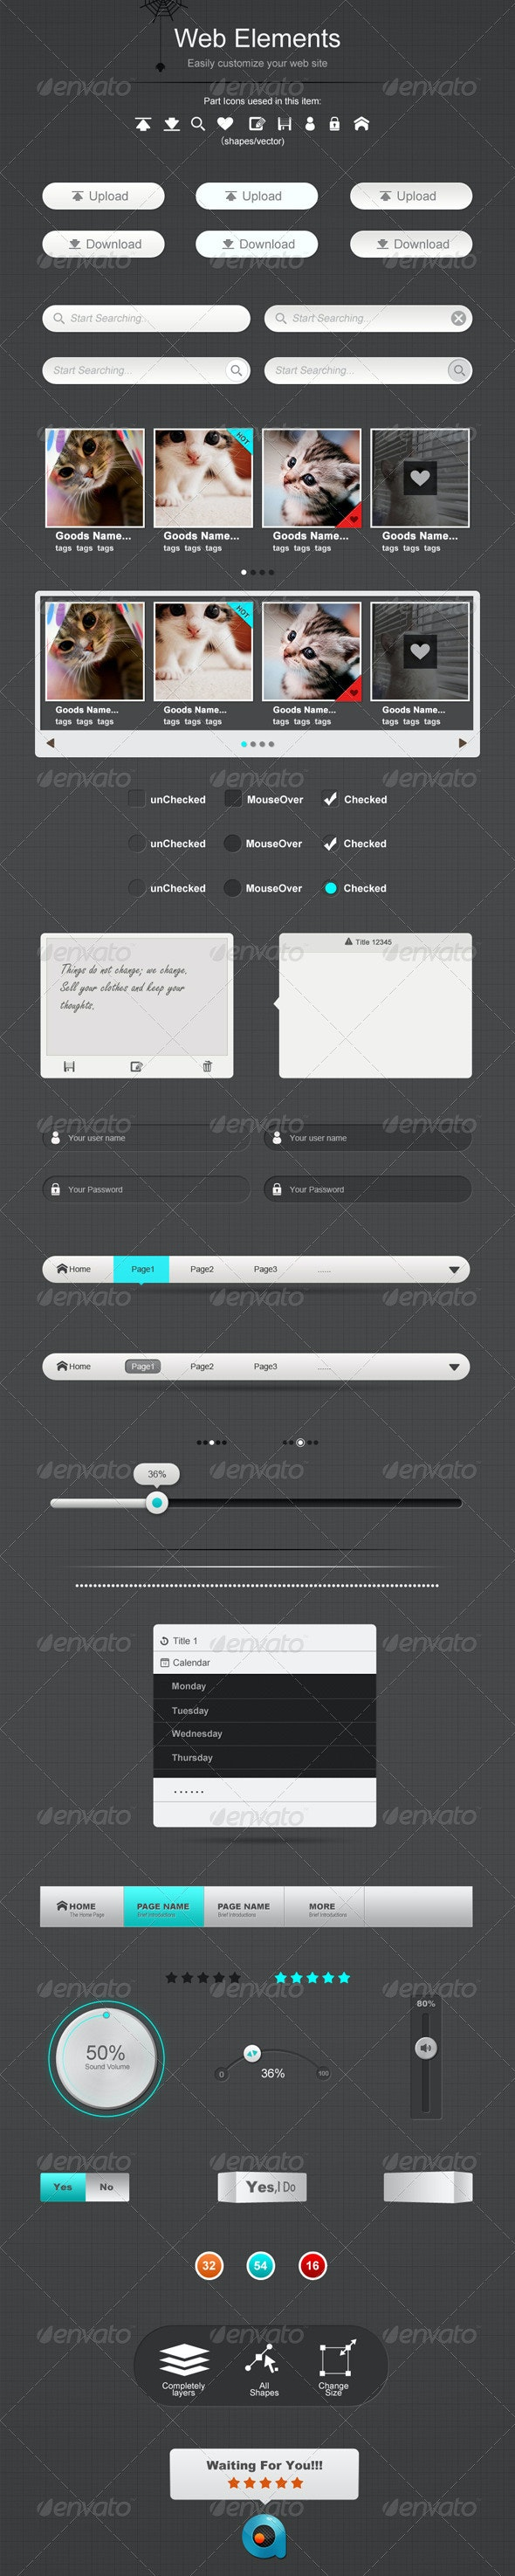 Simple And Clean Web Elements - Web Elements